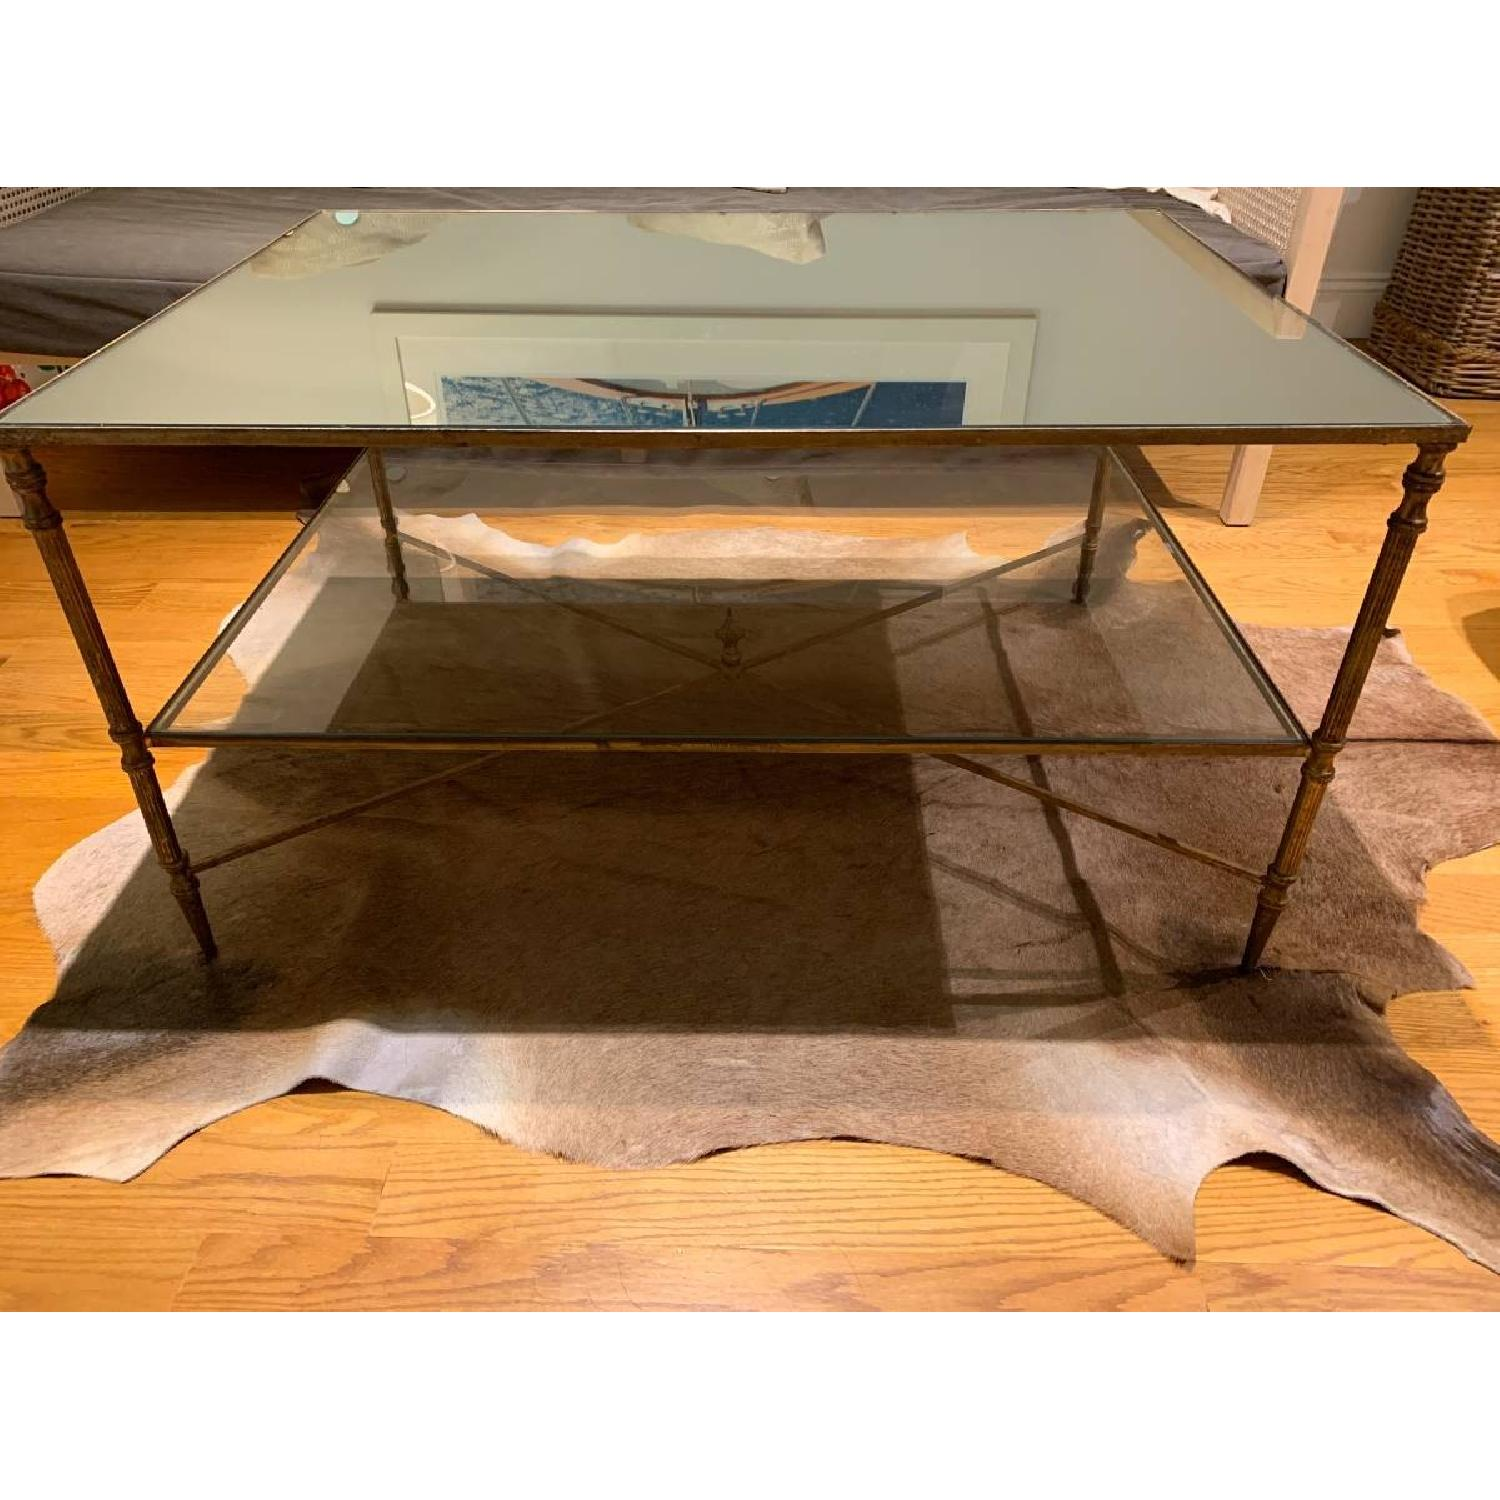 Uttermost Mirrored Glass Coffee Table - image-3